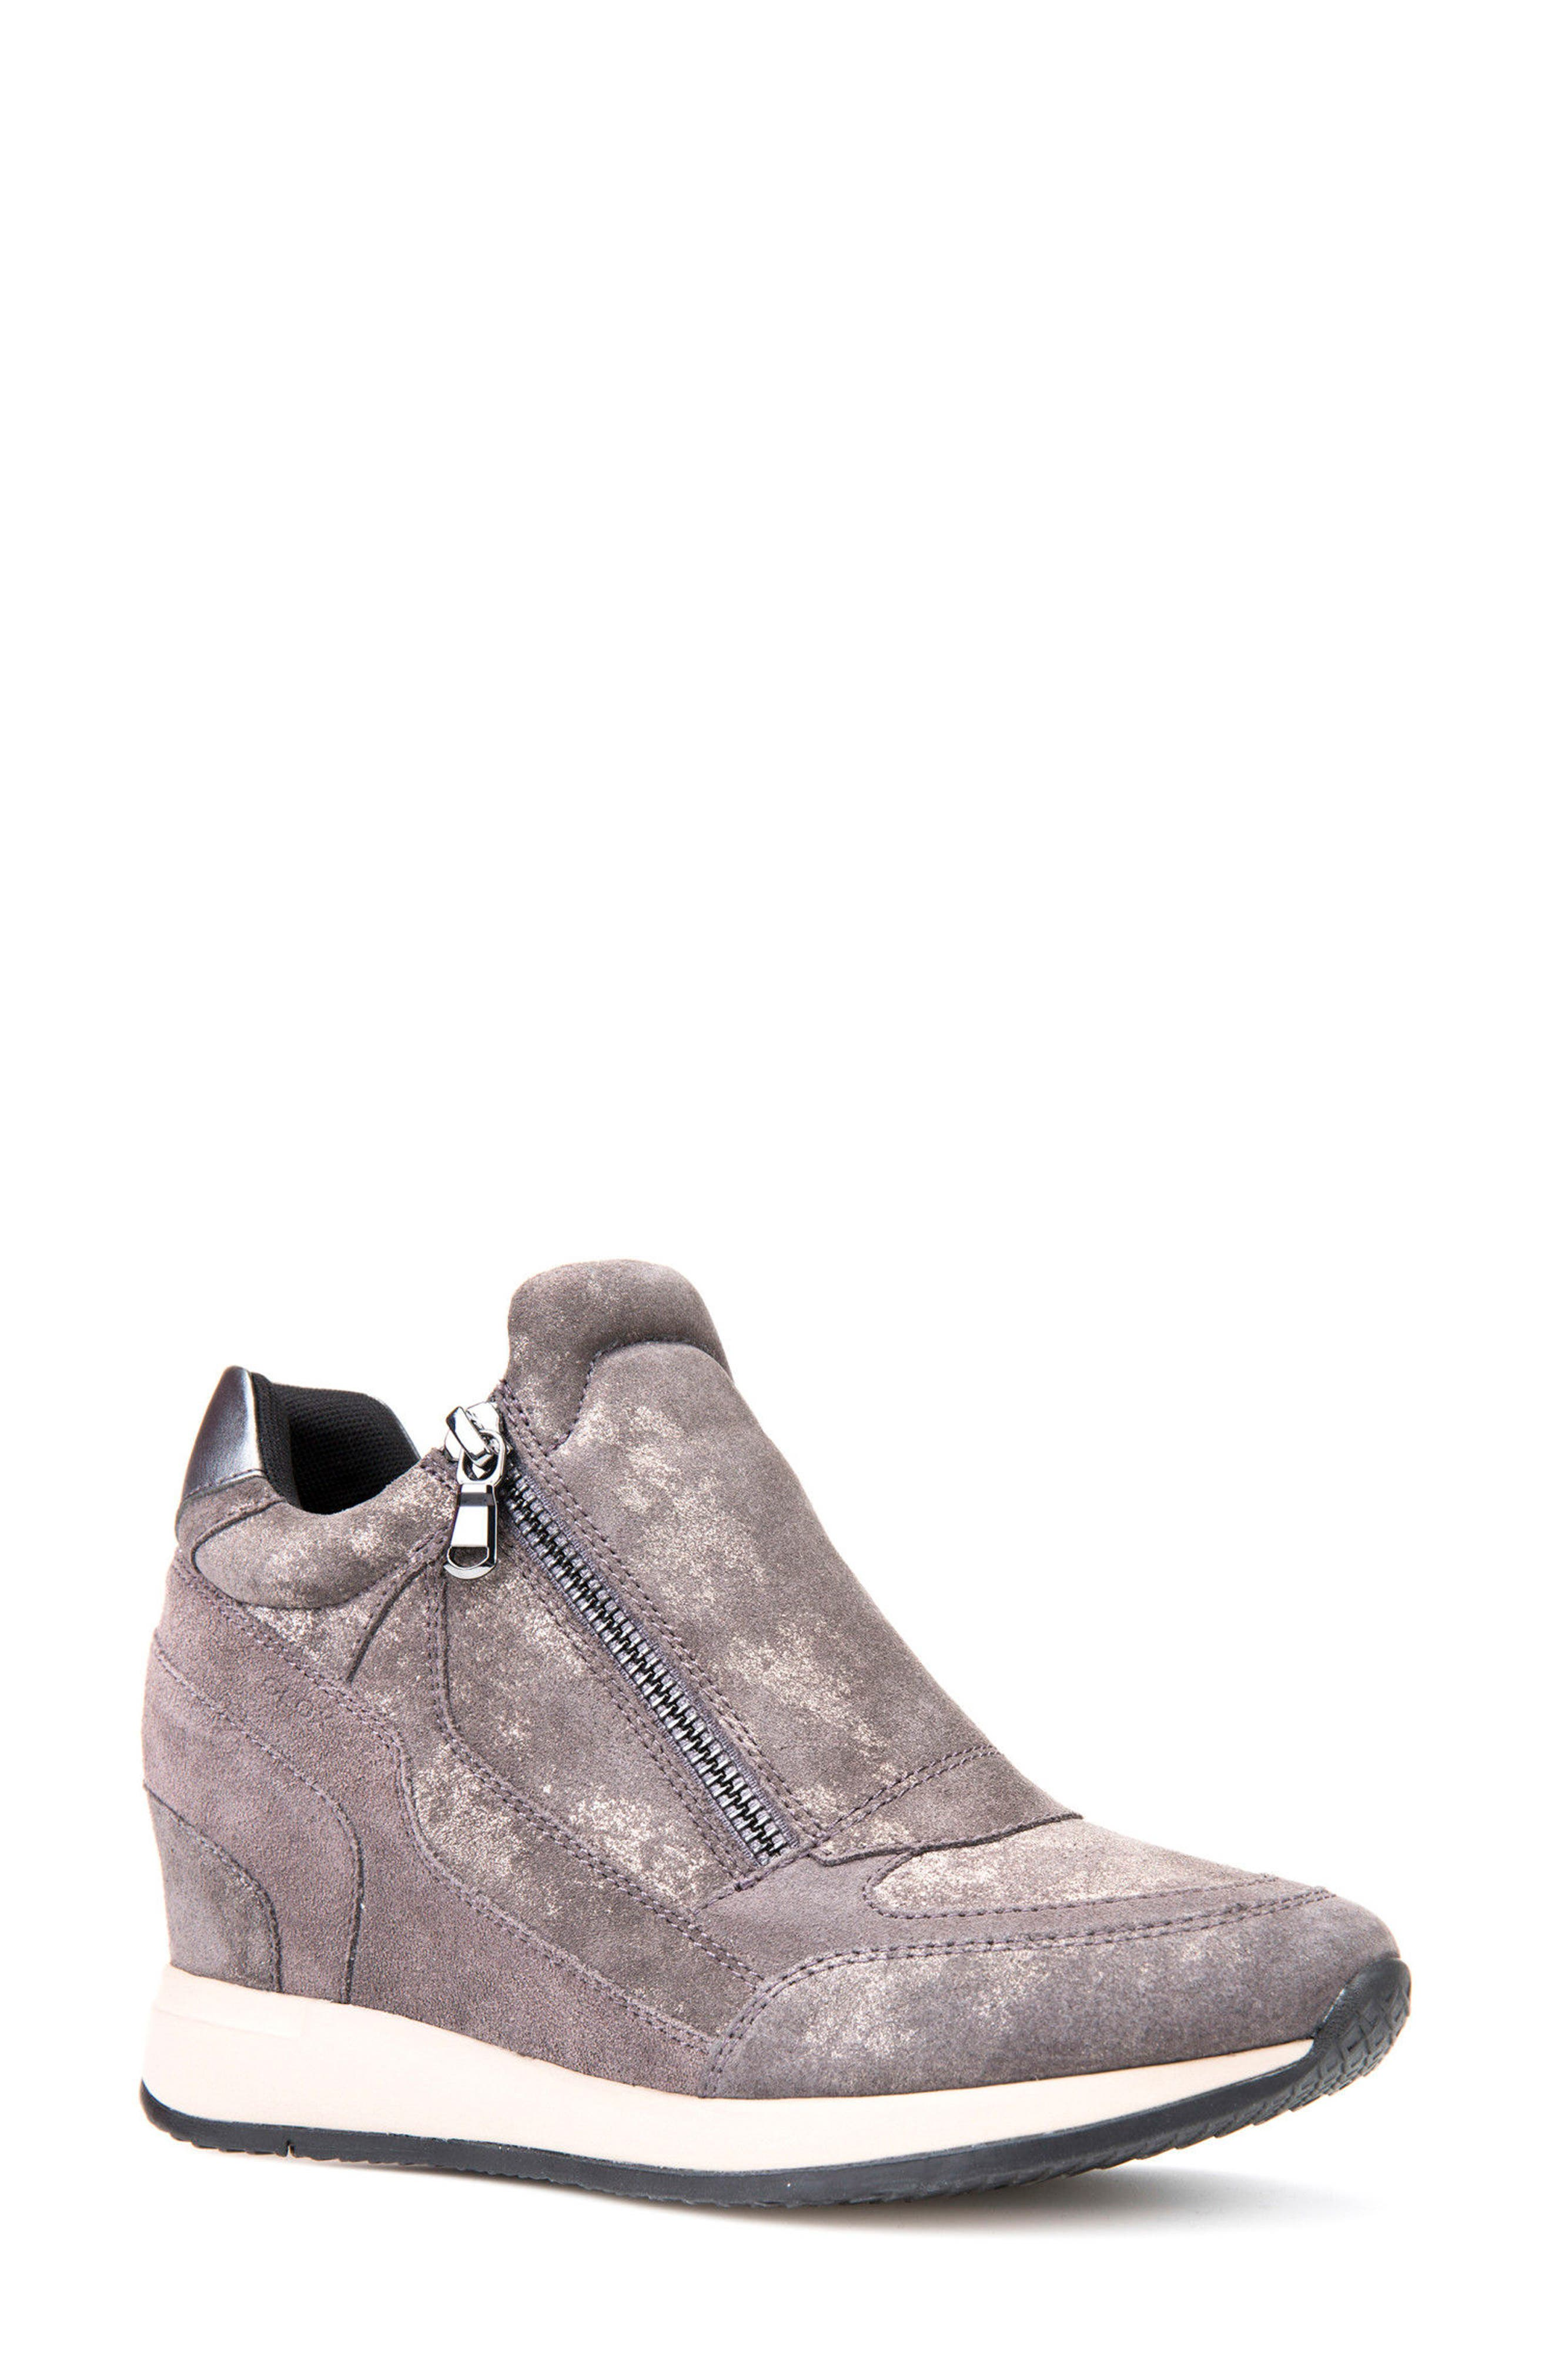 Nydame Wedge Sneaker,                         Main,                         color, Dark Grey Leather